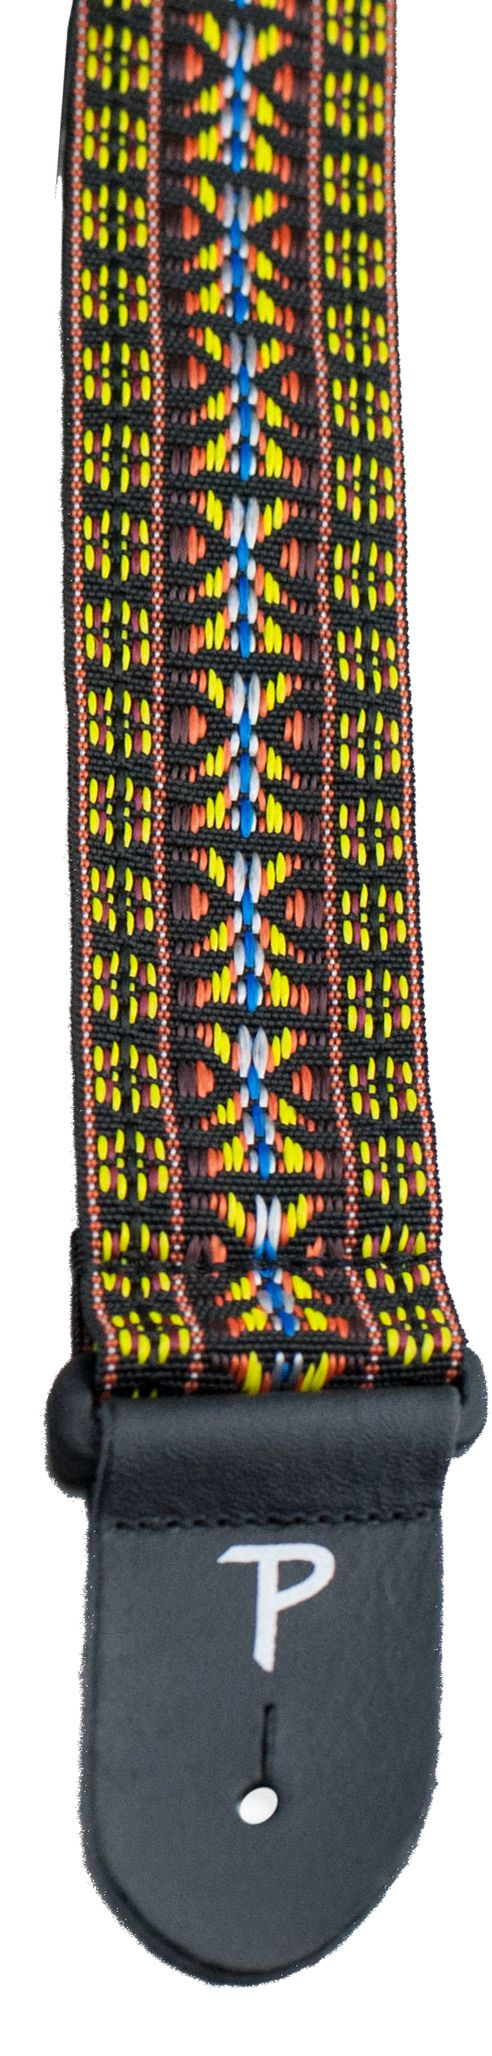 """2"""" Hootenanny Weaves Fabric Guitar Strap- Adjustable from 39"""" to 58""""  Made in Canada"""